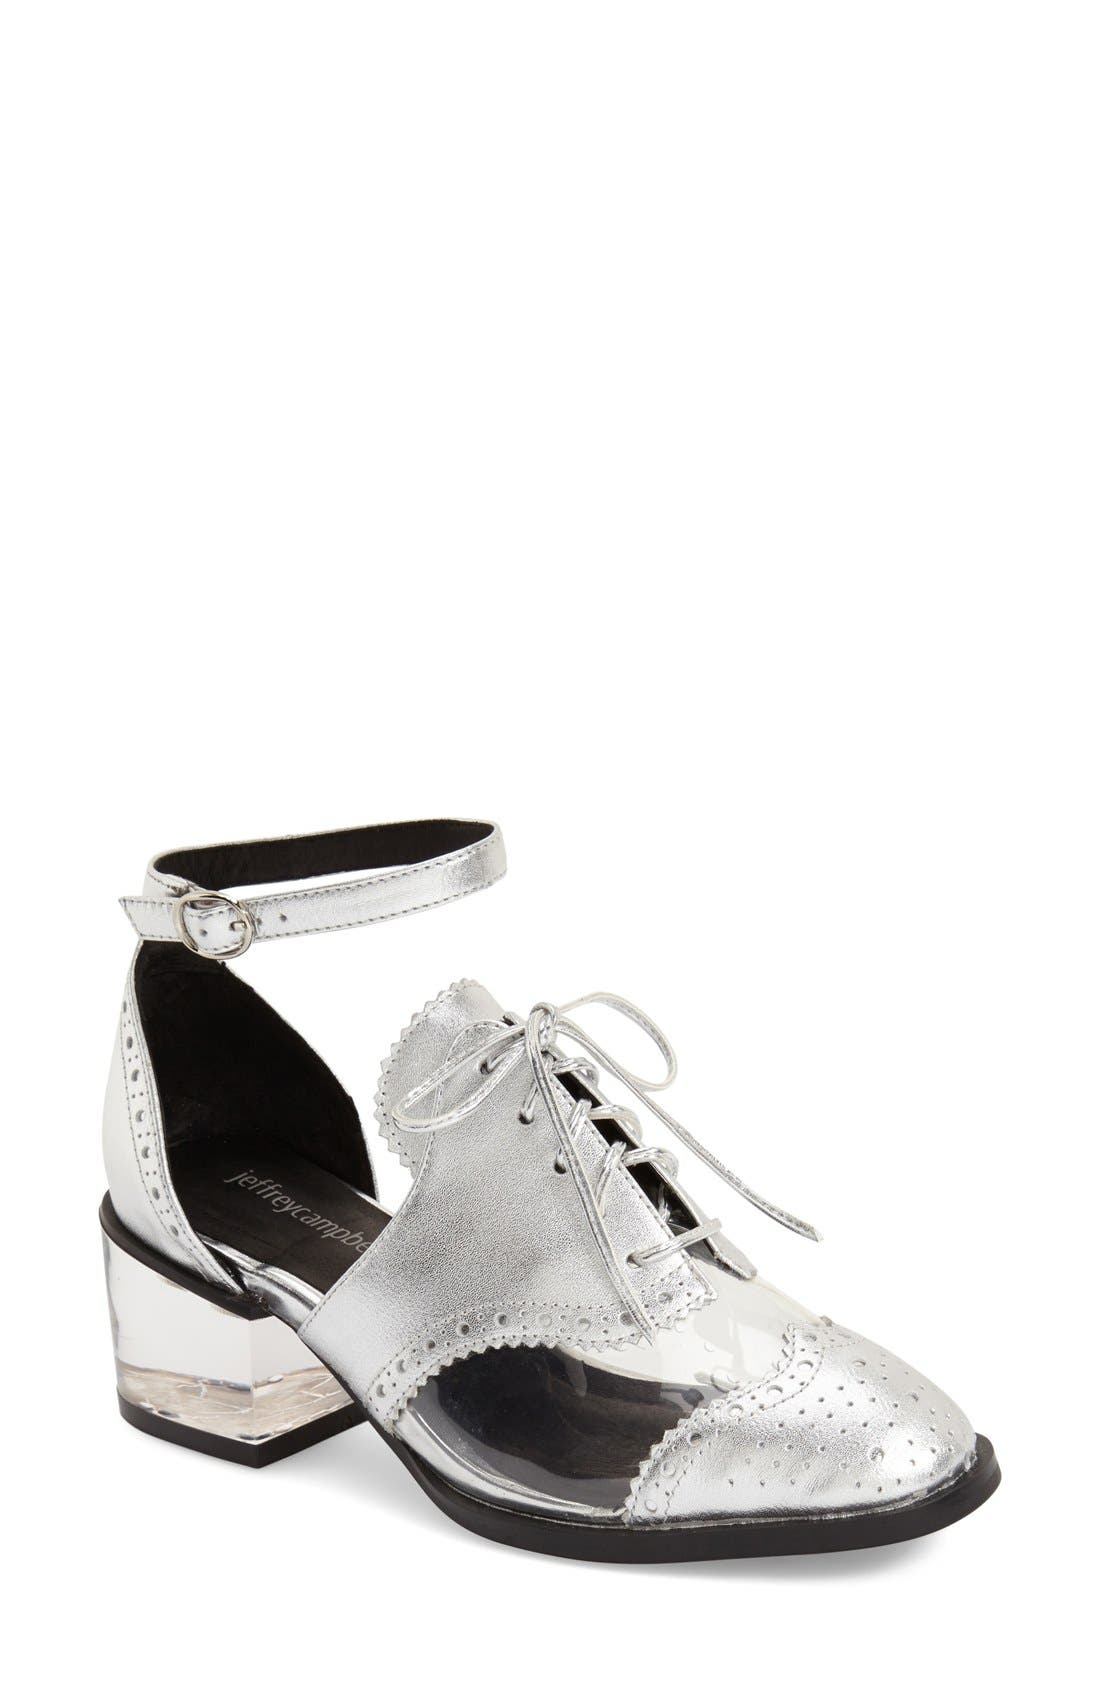 Main Image - Jeffrey Campbell 'Thoreau' Ankle Strap Oxford (Women)